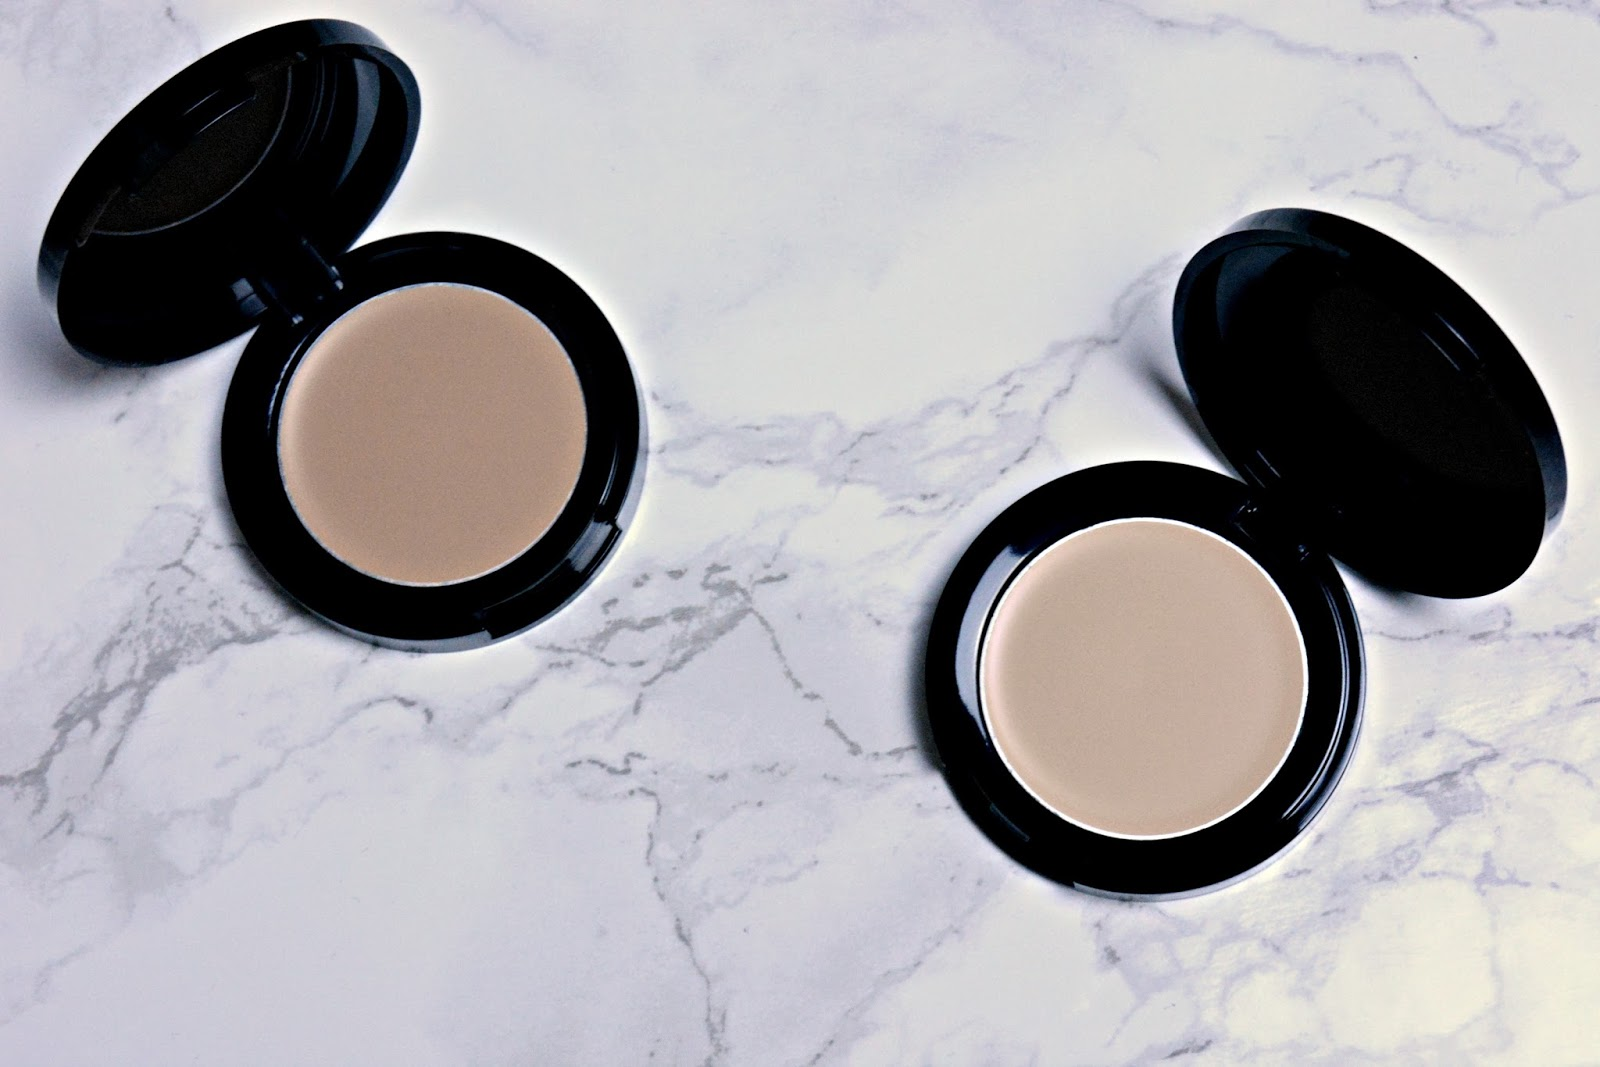 shade, medium, light, dark, concealer, make up, beauty, products, cream, avon, cosmetics, review